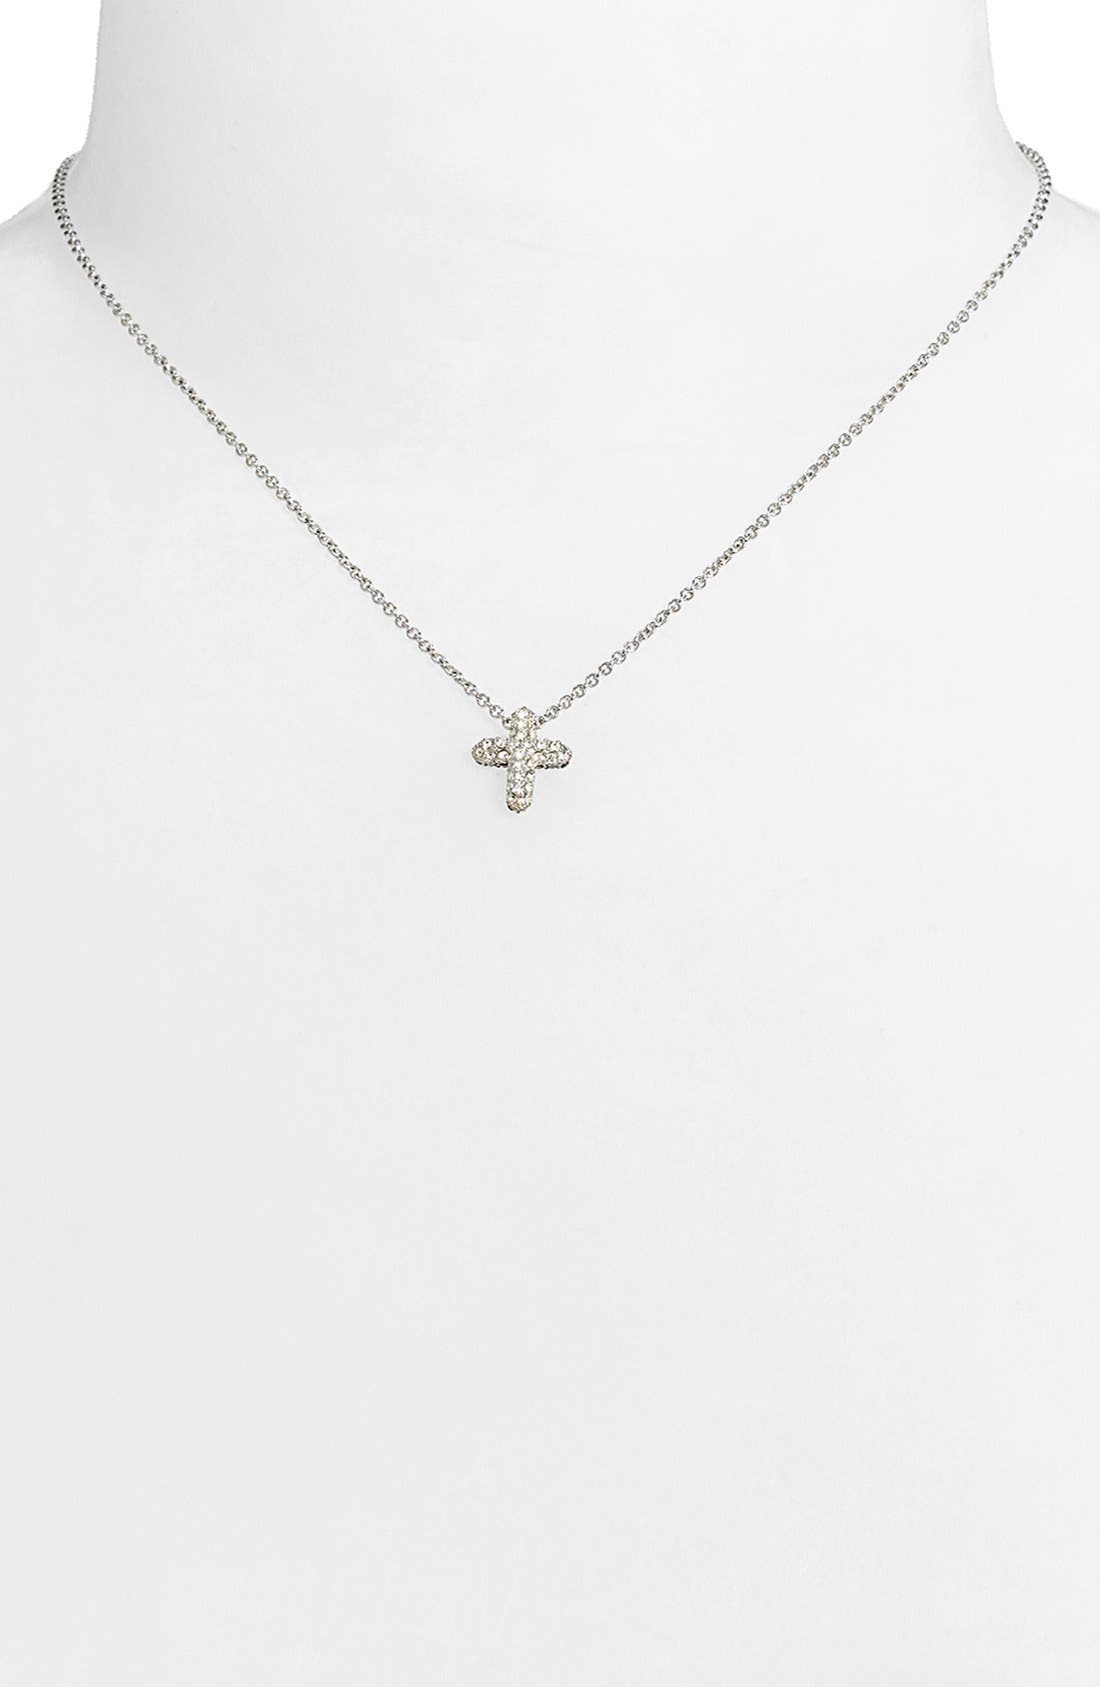 Reversible Pavé Cross Pendant Necklace,                             Alternate thumbnail 2, color,                             Cross